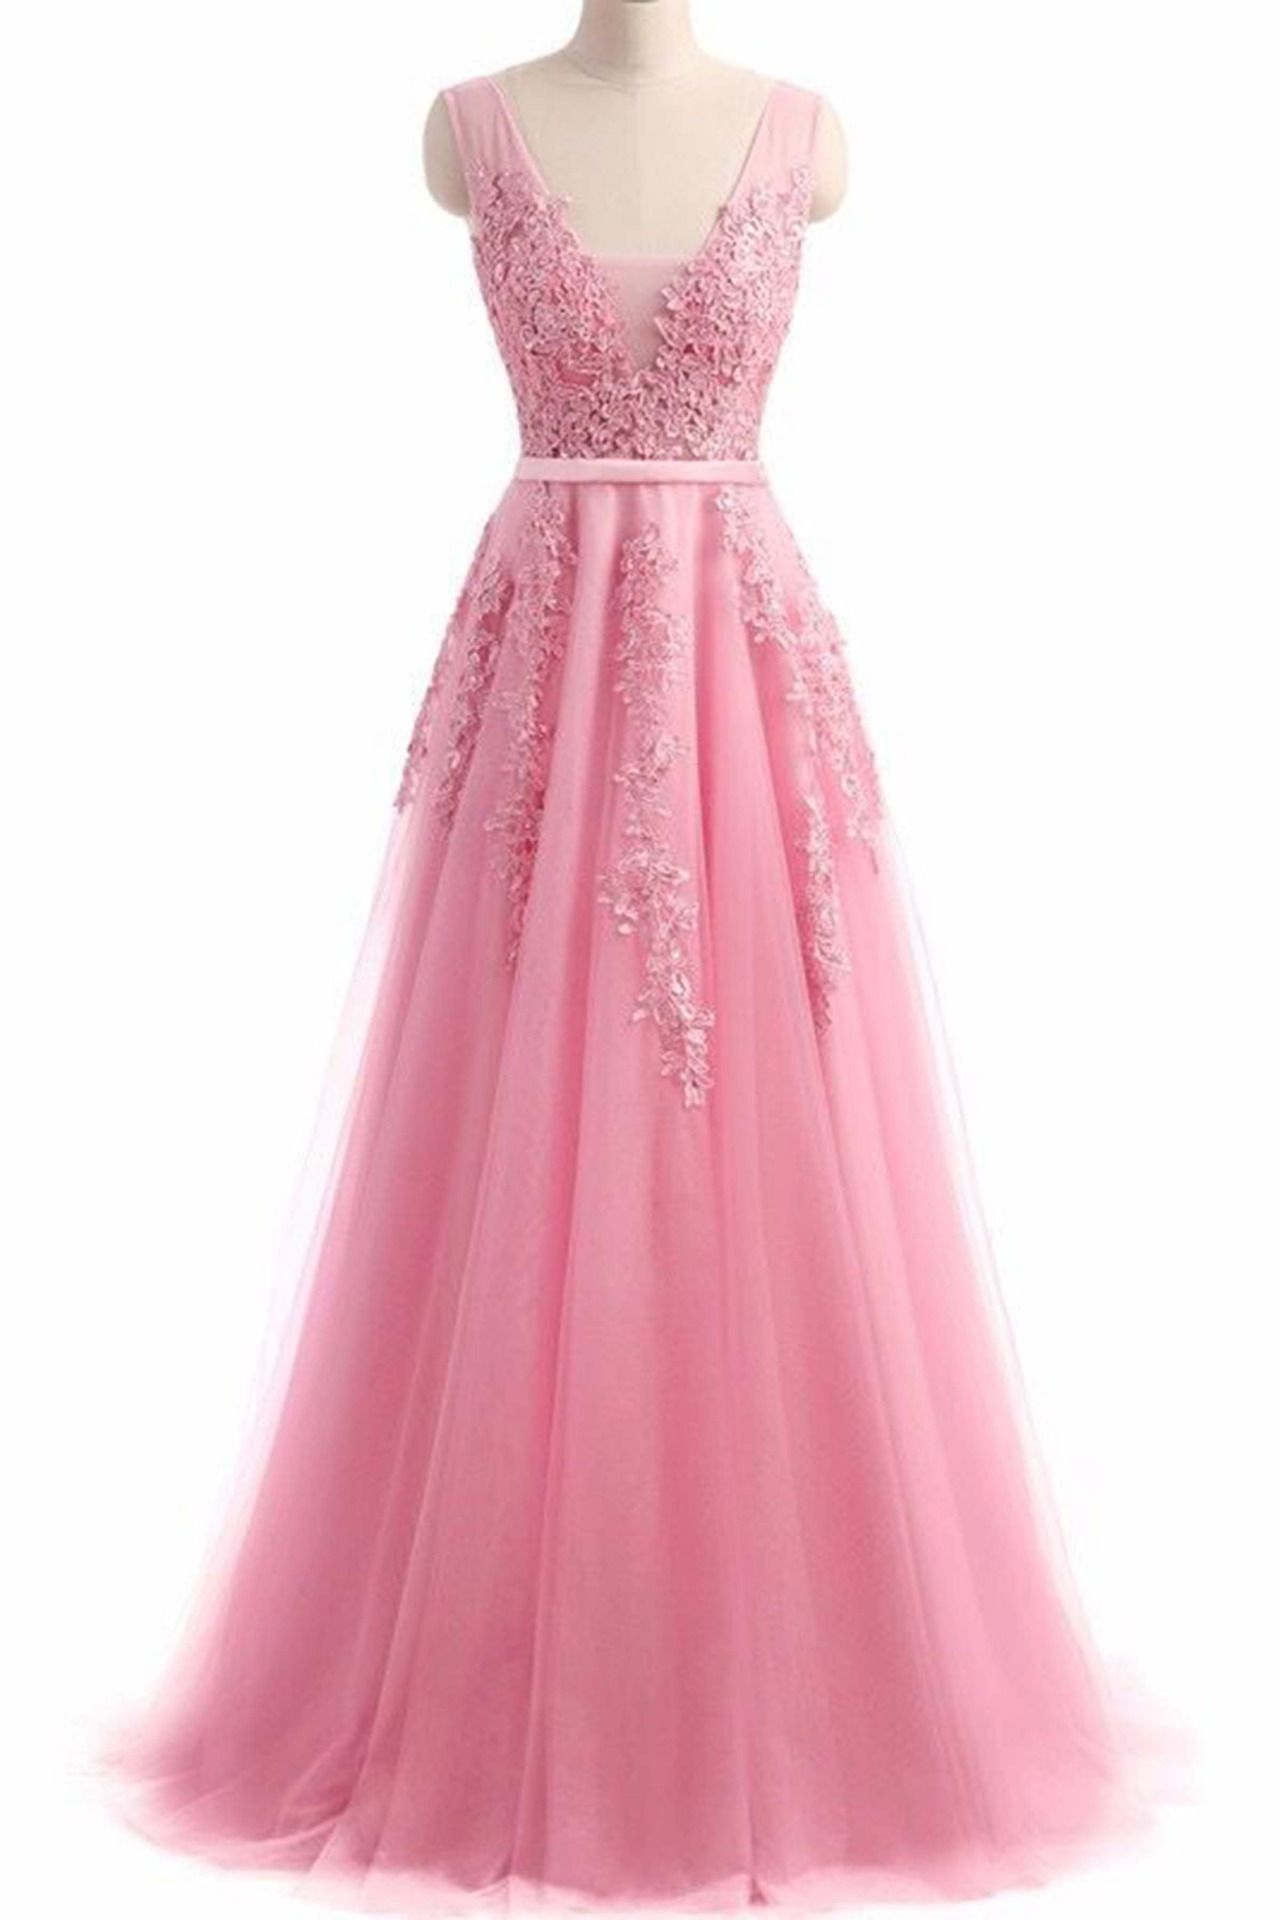 Pink lace appliqued chiffon prom dress, formal dress, long prom ...